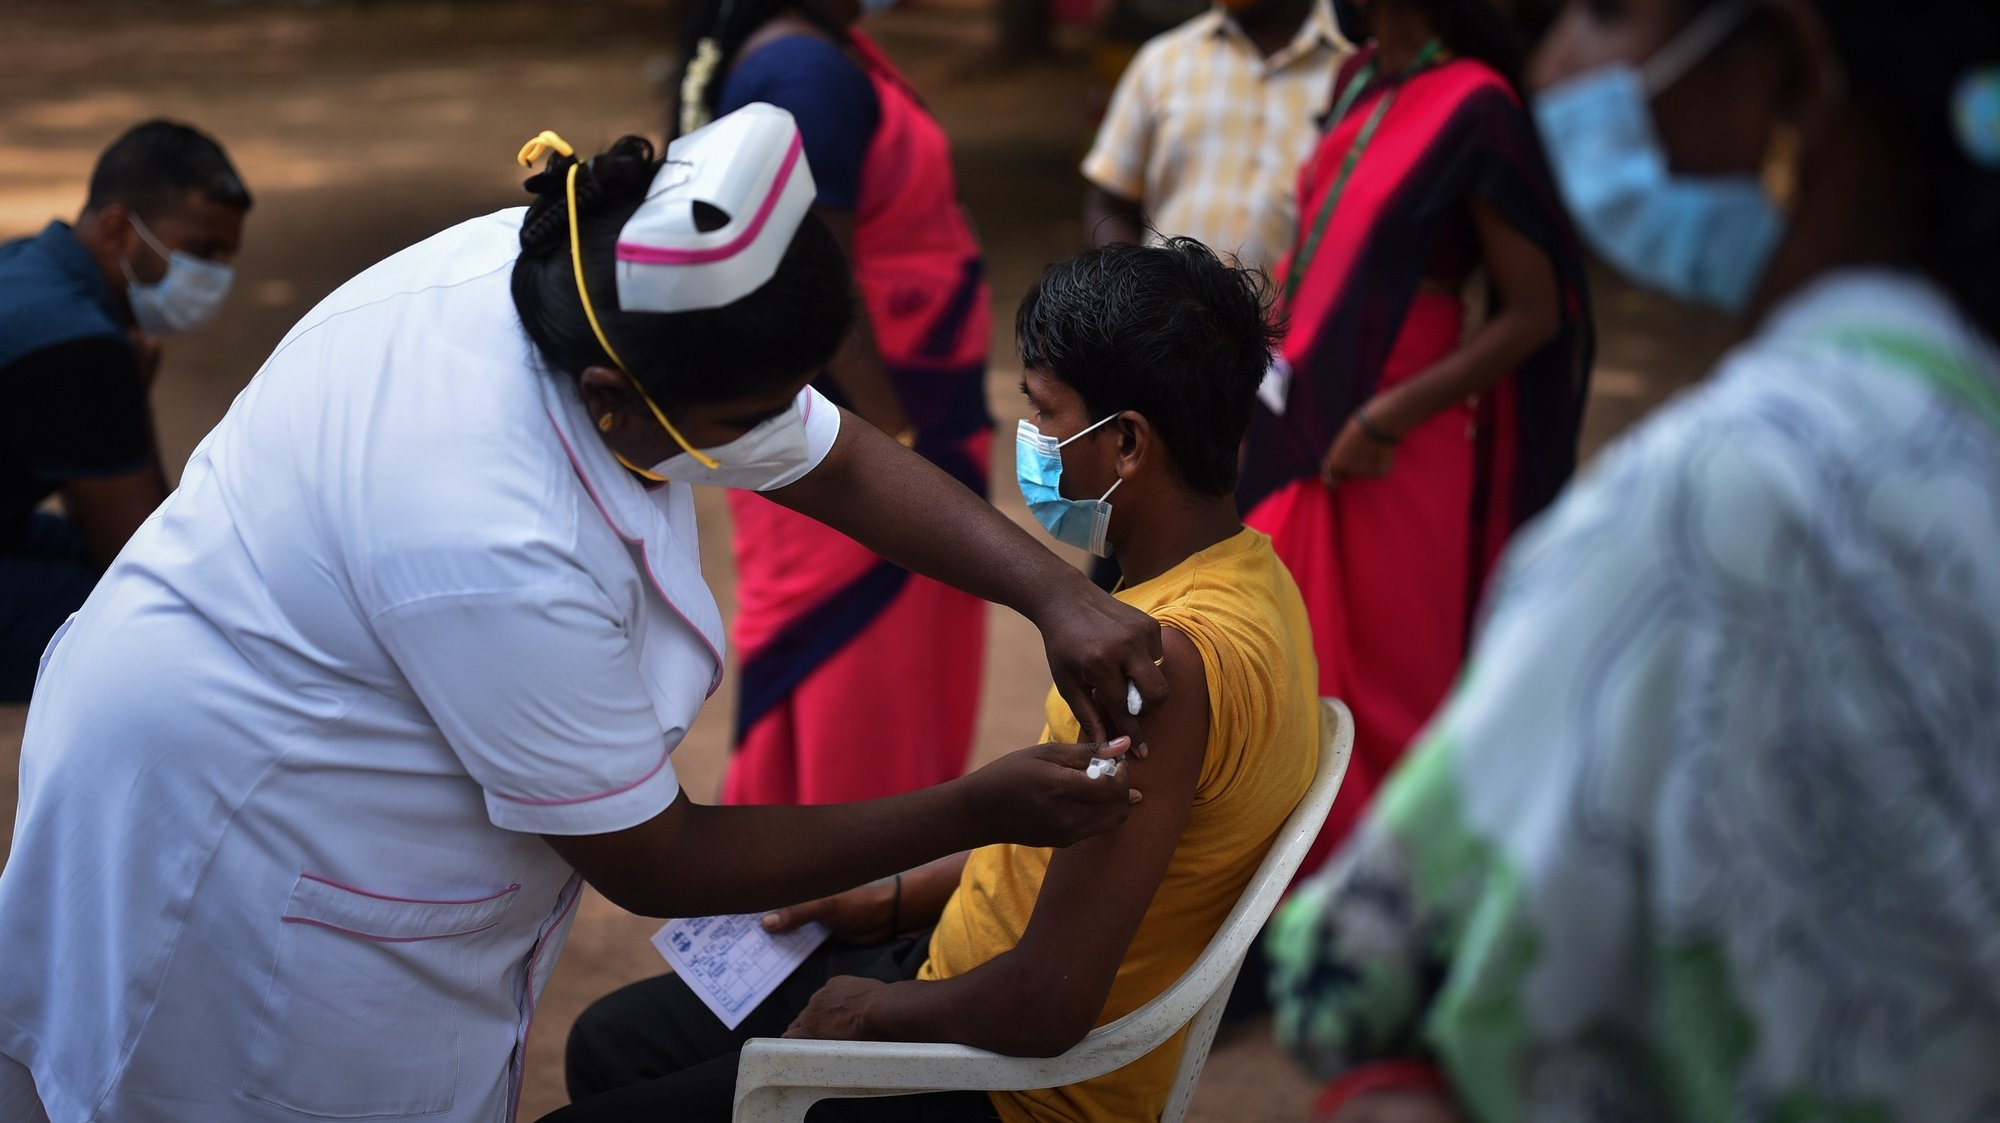 epa09463272 An Indian health worker administers a dose of COVID-19 vaccine to a man during a state wide mega-vaccination drive against the COVID-19 coronavirus, at a government school in Chennai, India, 12 September 2021. The Tamil Nadu state government organized a mega COVID-19 vaccination drive across the state for 12 hours from 7 am to 7 pm, which aims to inoculate around 2 million people above 18 years  in 40,000 government centers on 12 September 2021. The state government is conducting the mega vaccination drive to avoid the possible third COVID-19 wave. The Greater Chennai Corporation (GCC) has set-up 1600 special vaccination camps as part of the state wide mega COVID-19 vaccination drive in Chennai.  EPA/IDREES MOHAMMED